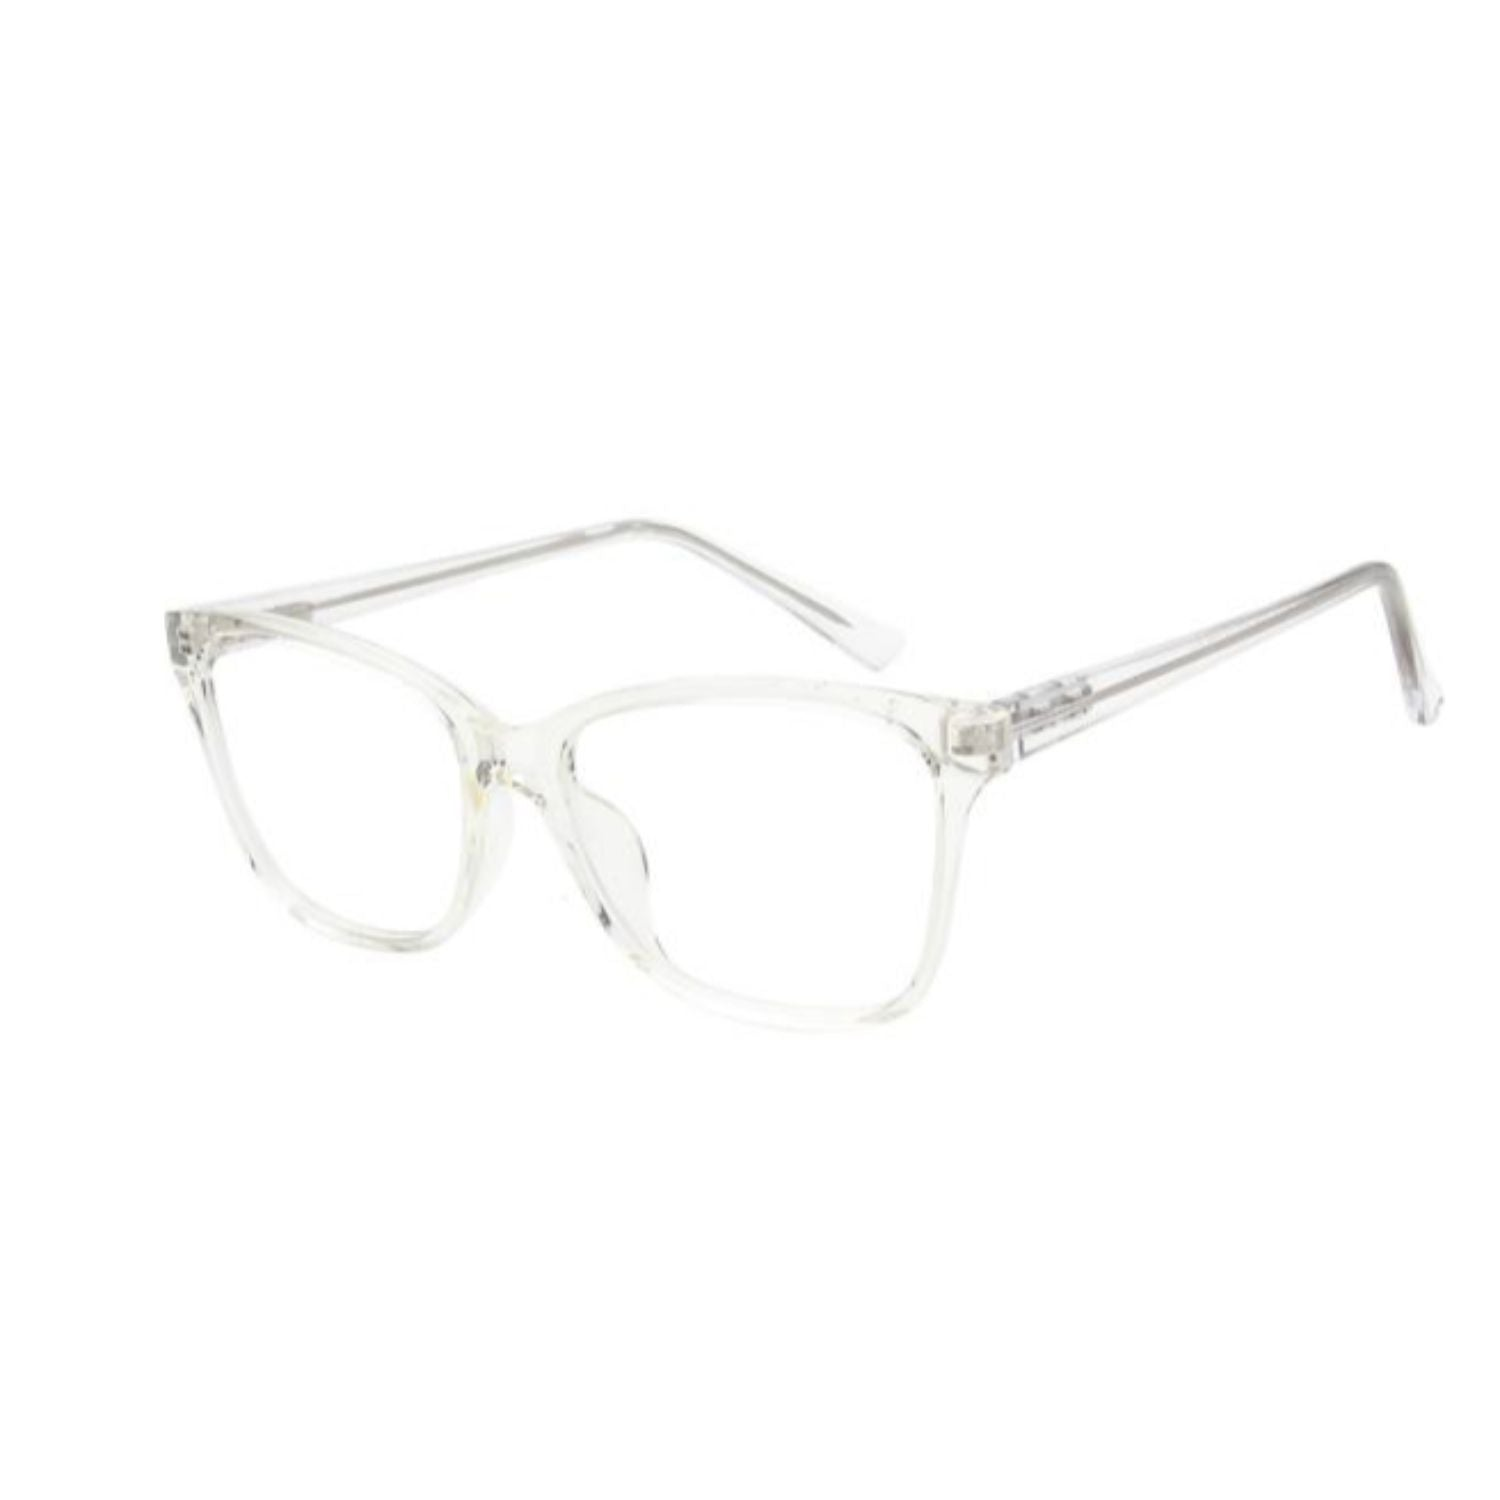 OTR29 - Classic Rectangle High Silhouette Fashion Optical Glasses - Iris Fashion Inc. | Wholesale Sunglasses and Glasses